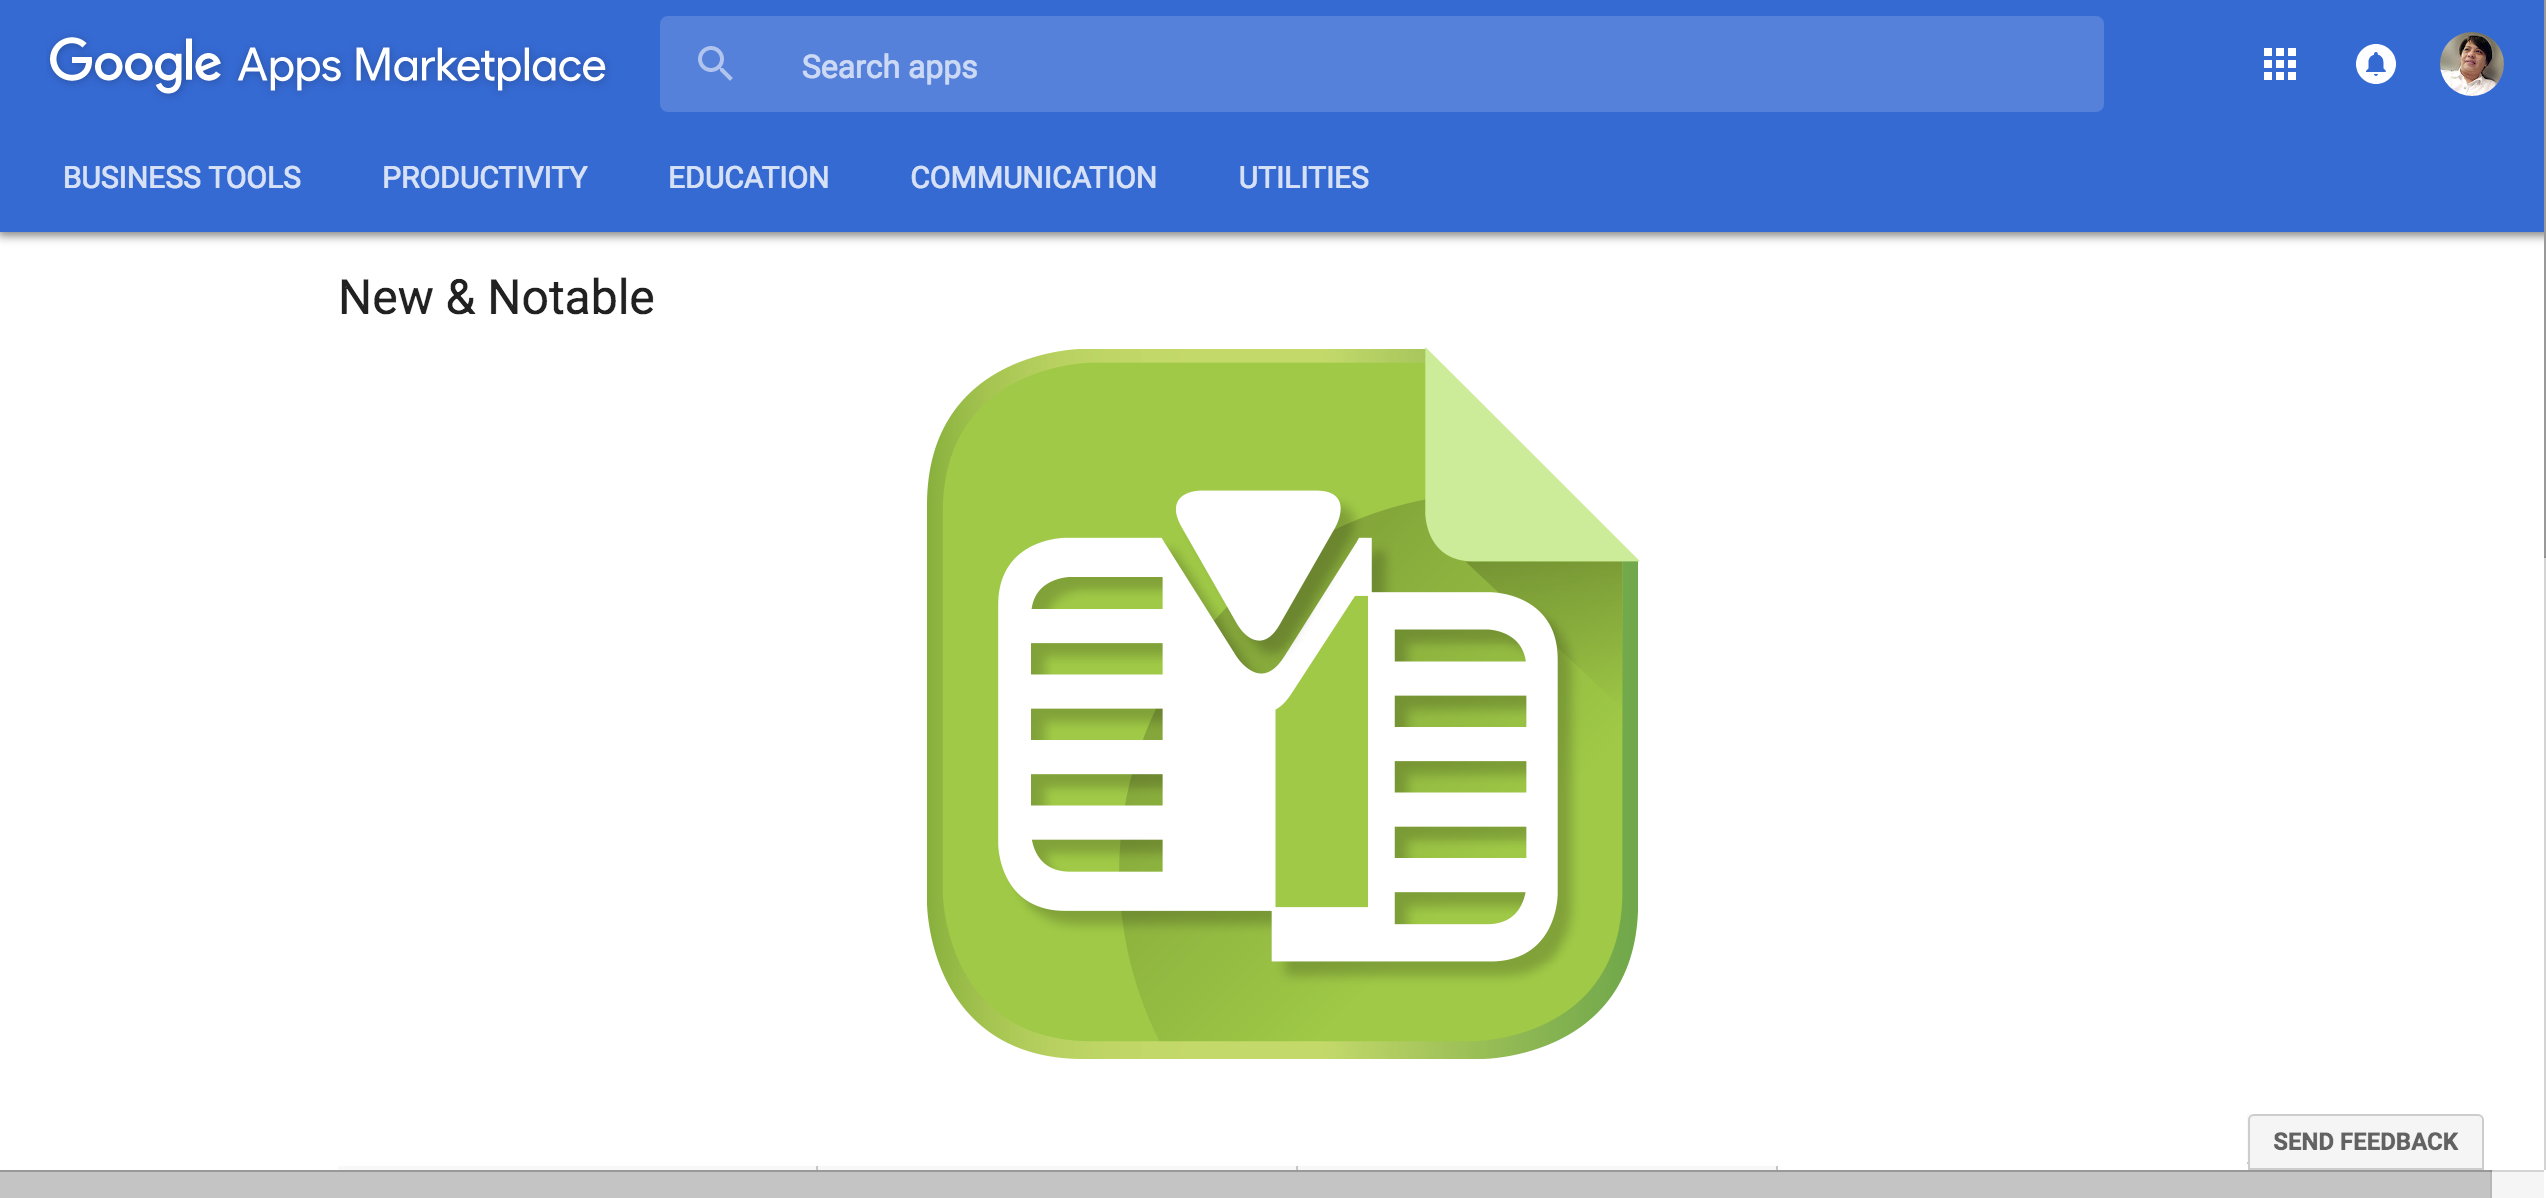 Wizy.io's Doc Merge & Mail Merge add-on is chosen as a New & Notable app in the Google Apps Marketplace